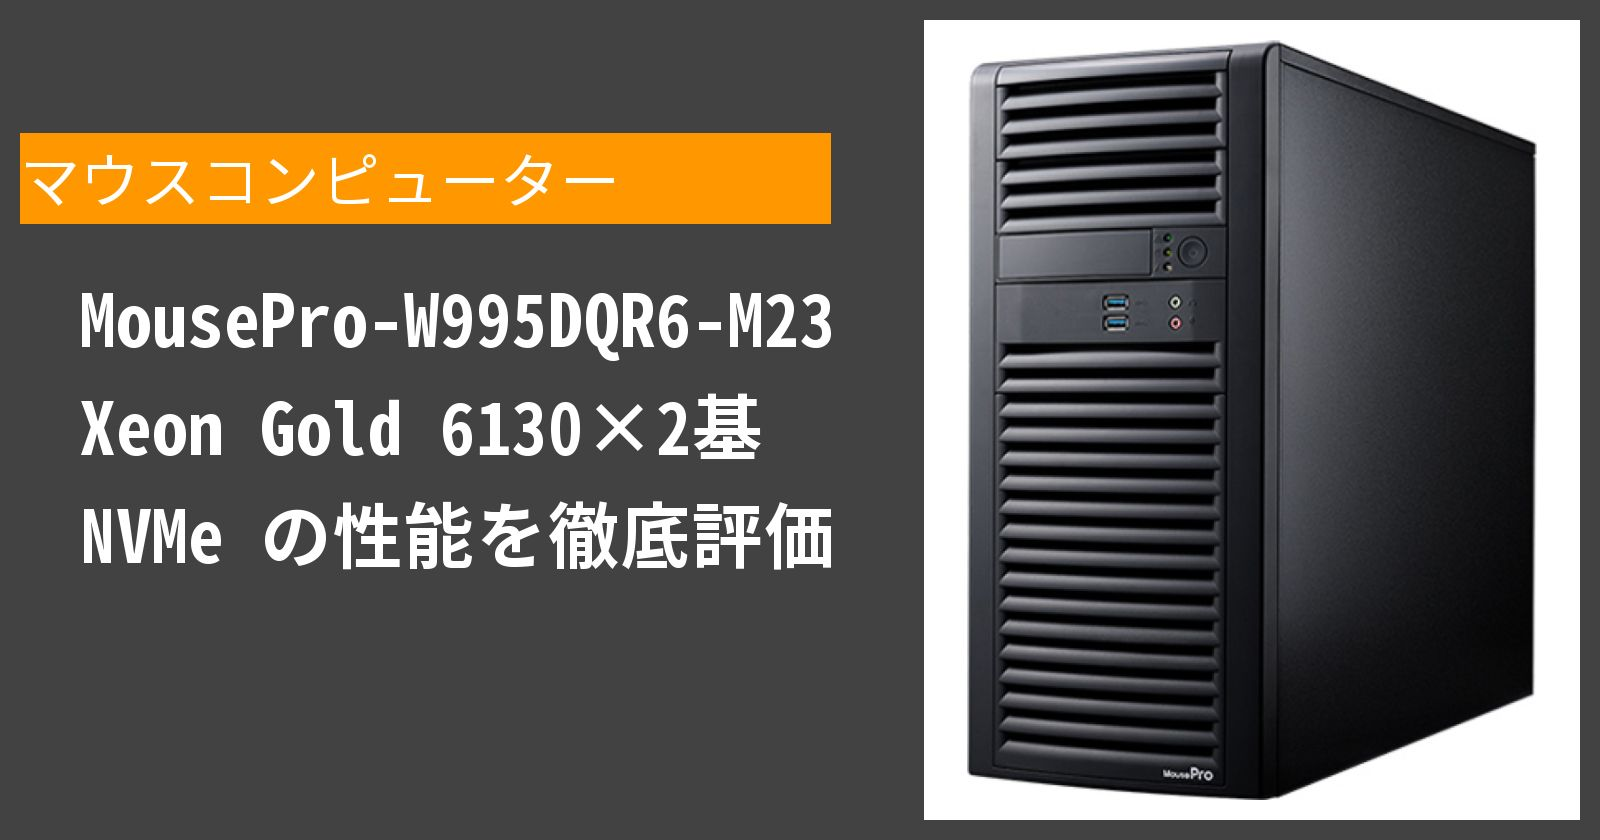 MousePro-W995DQR6-M23 Xeon Gold 6130×2基 NVMe の性能を徹底評価